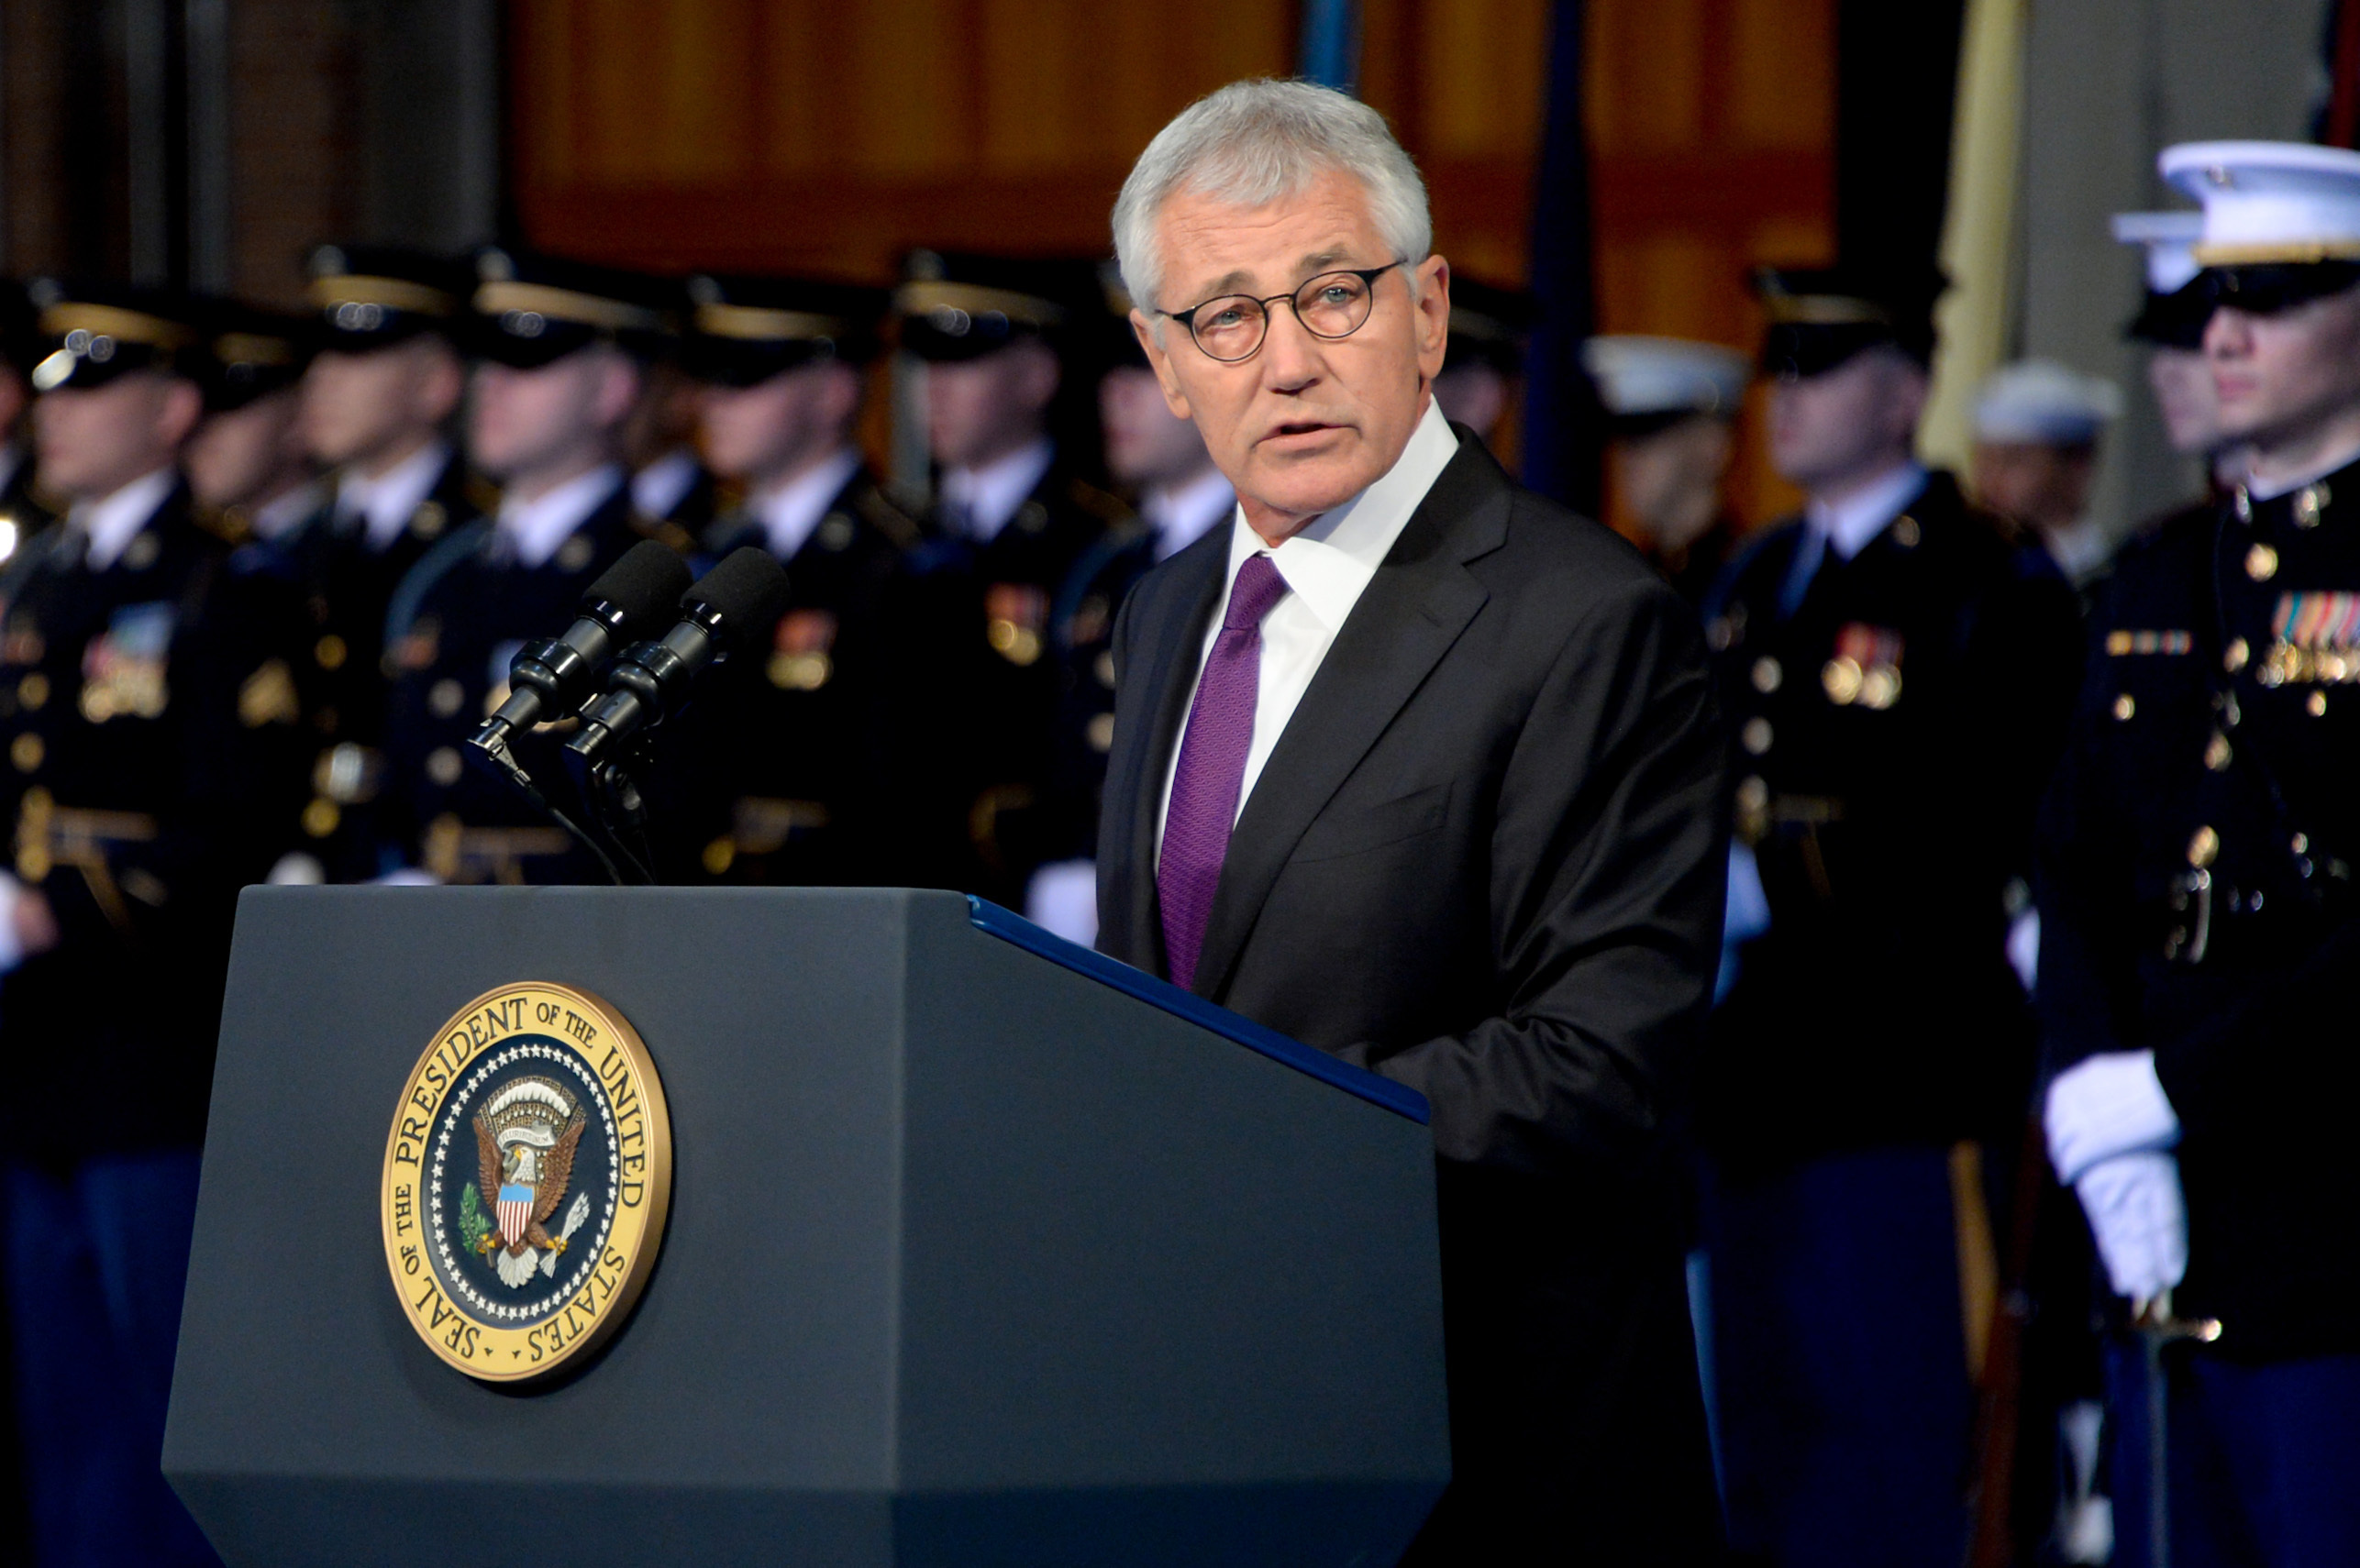 Thesis For Argumentative Essay Defense Secretary Chuck Hagel Speaks During The Armed Forces Farewell  Tribute To Him On Joint Base Business Plan Essay also Essay On Business Ethics Us Department Of Defense  Photos  Photo Gallery Essay Com In English